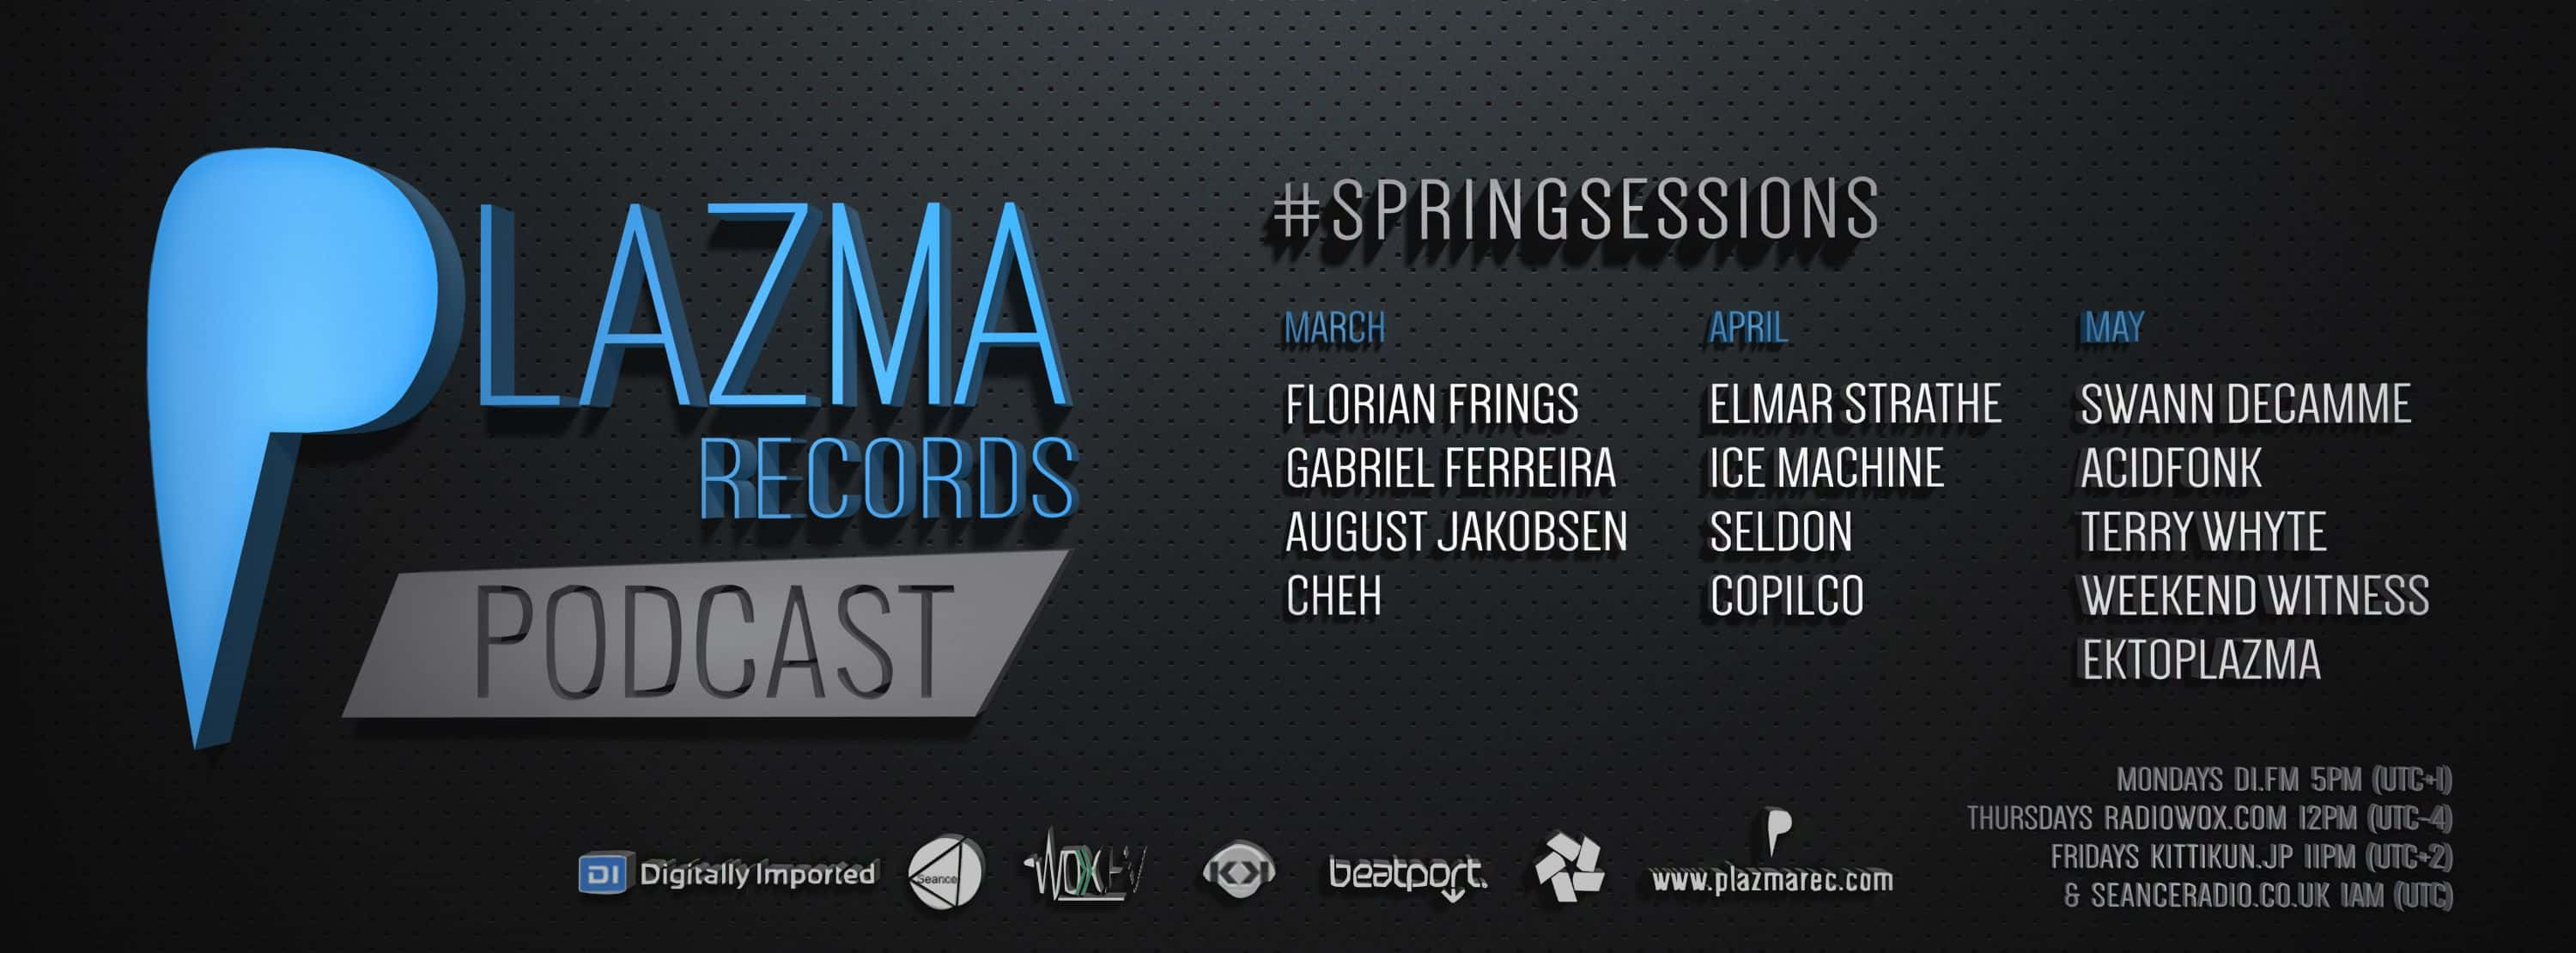 SpringSessions | Plazma Records Podcast